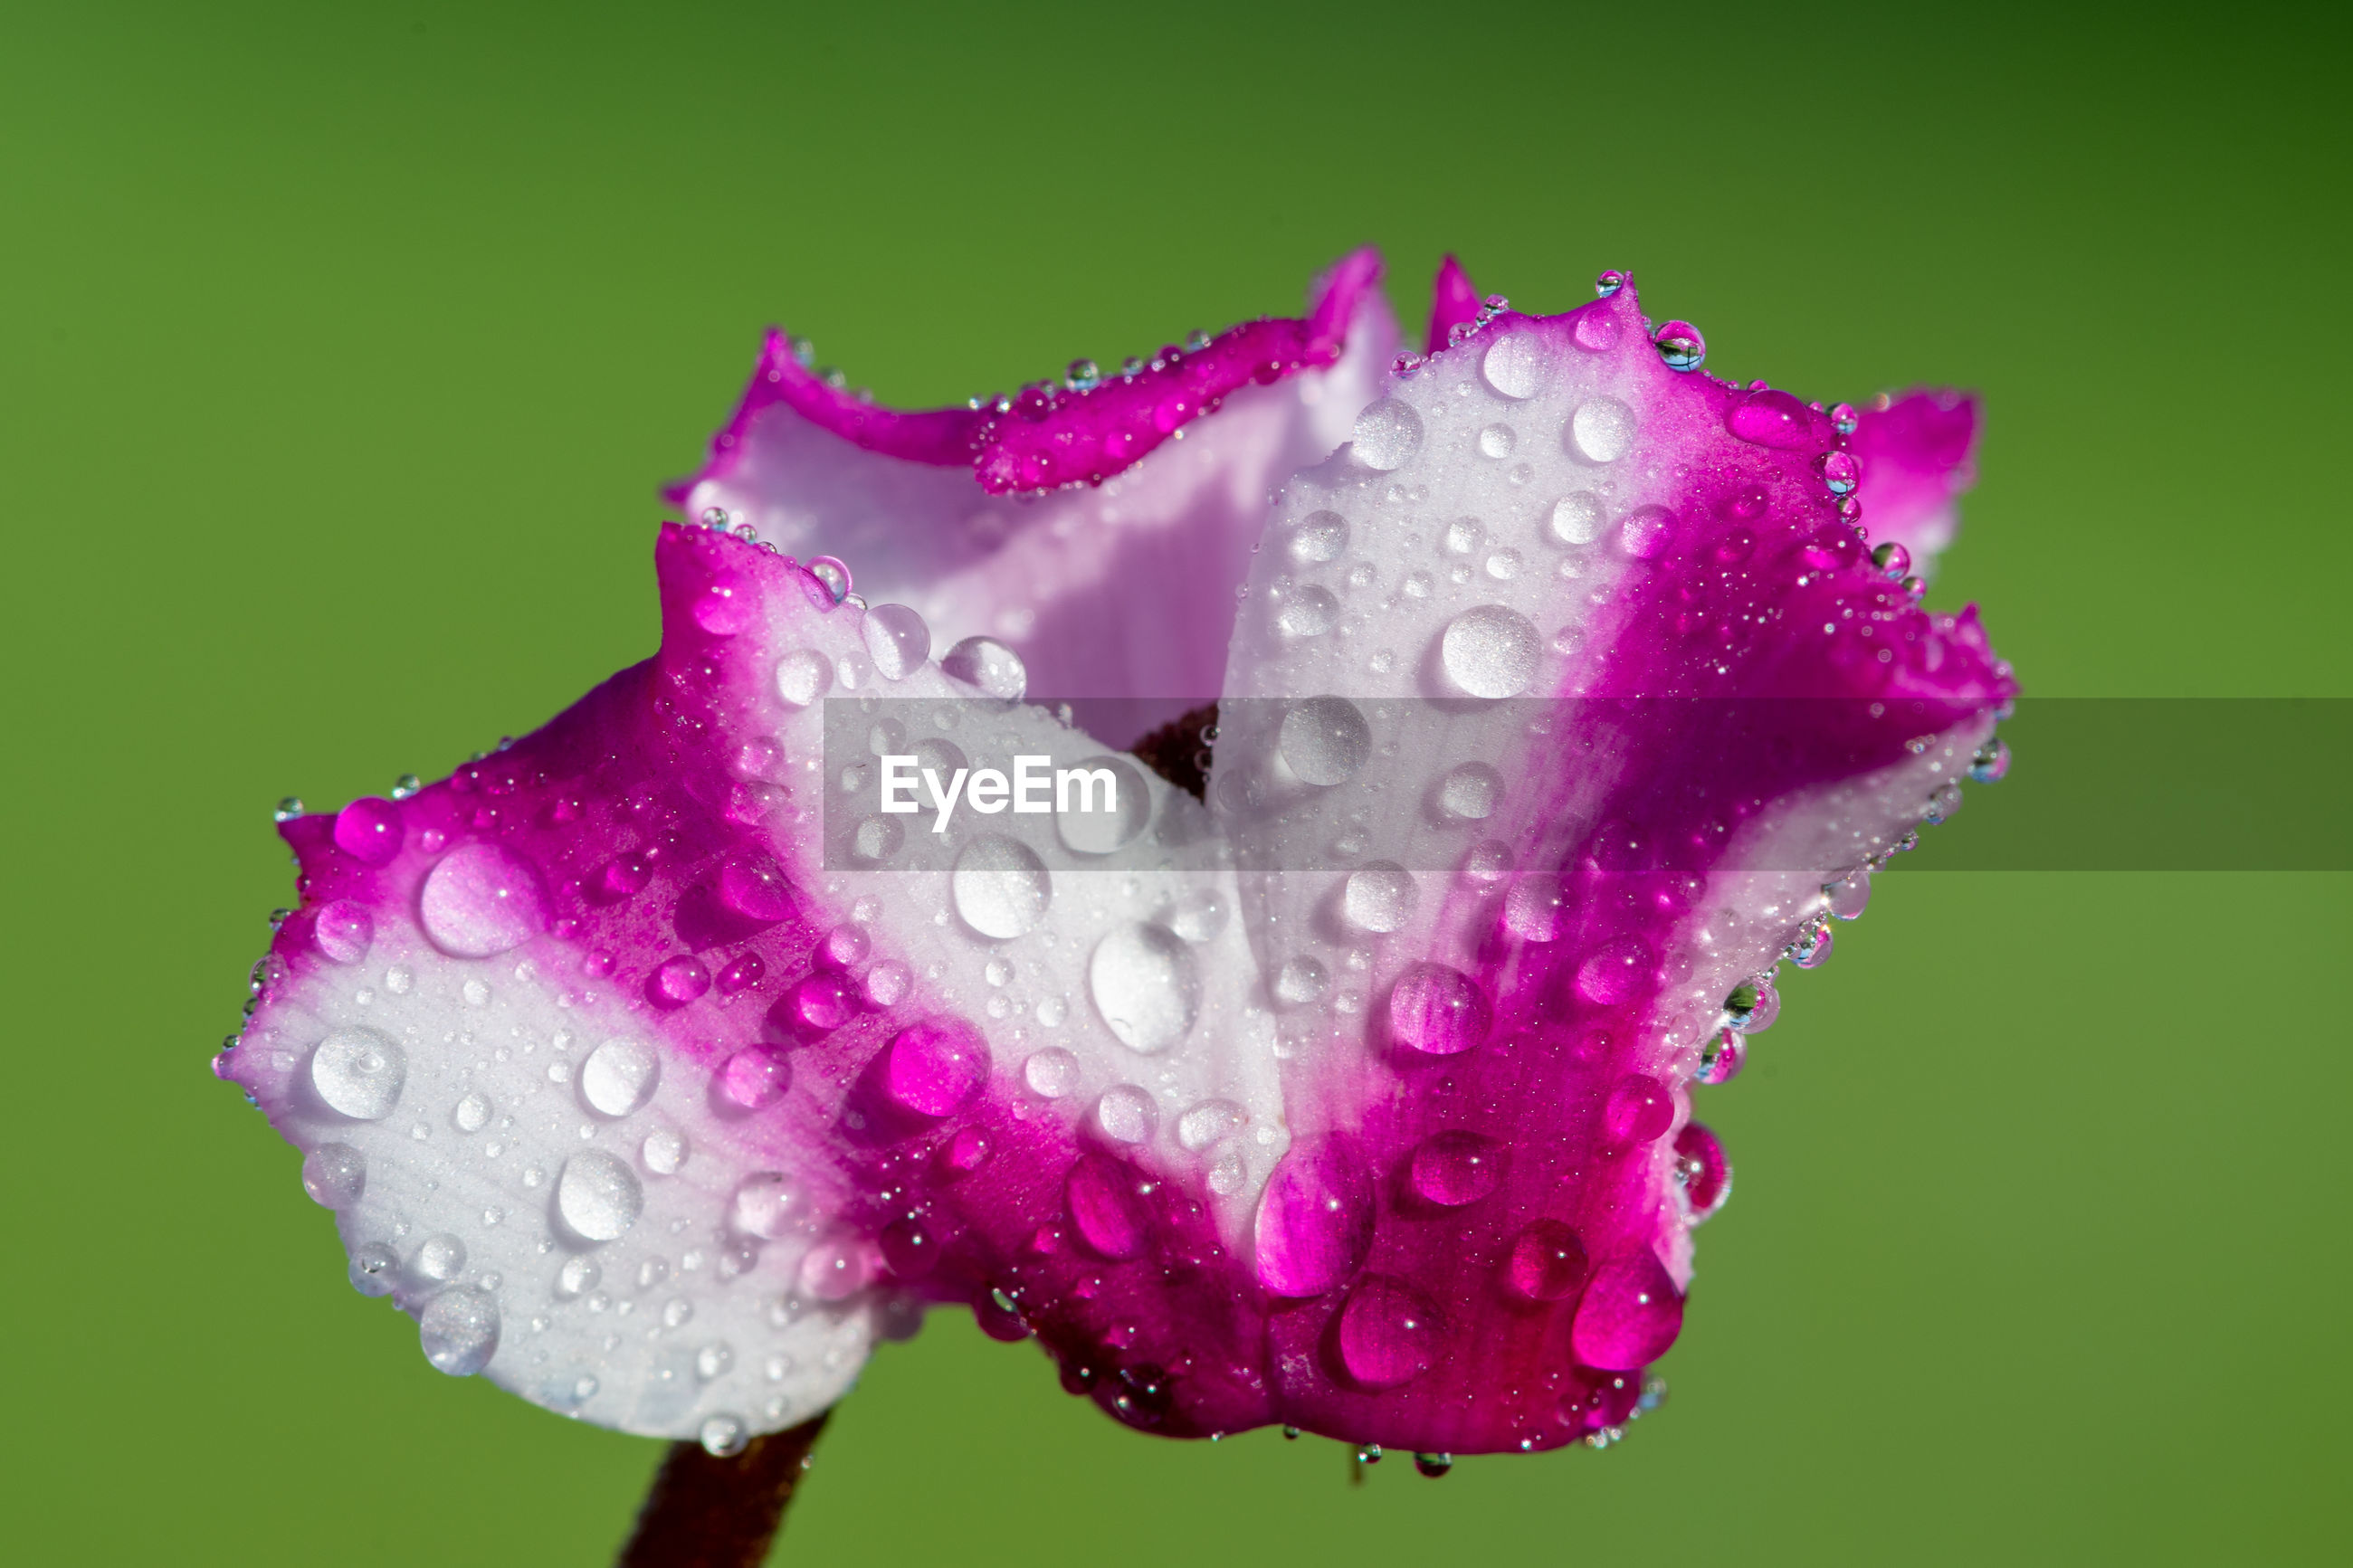 Macro shot of a cyclamen origami flower covered in water droplets.